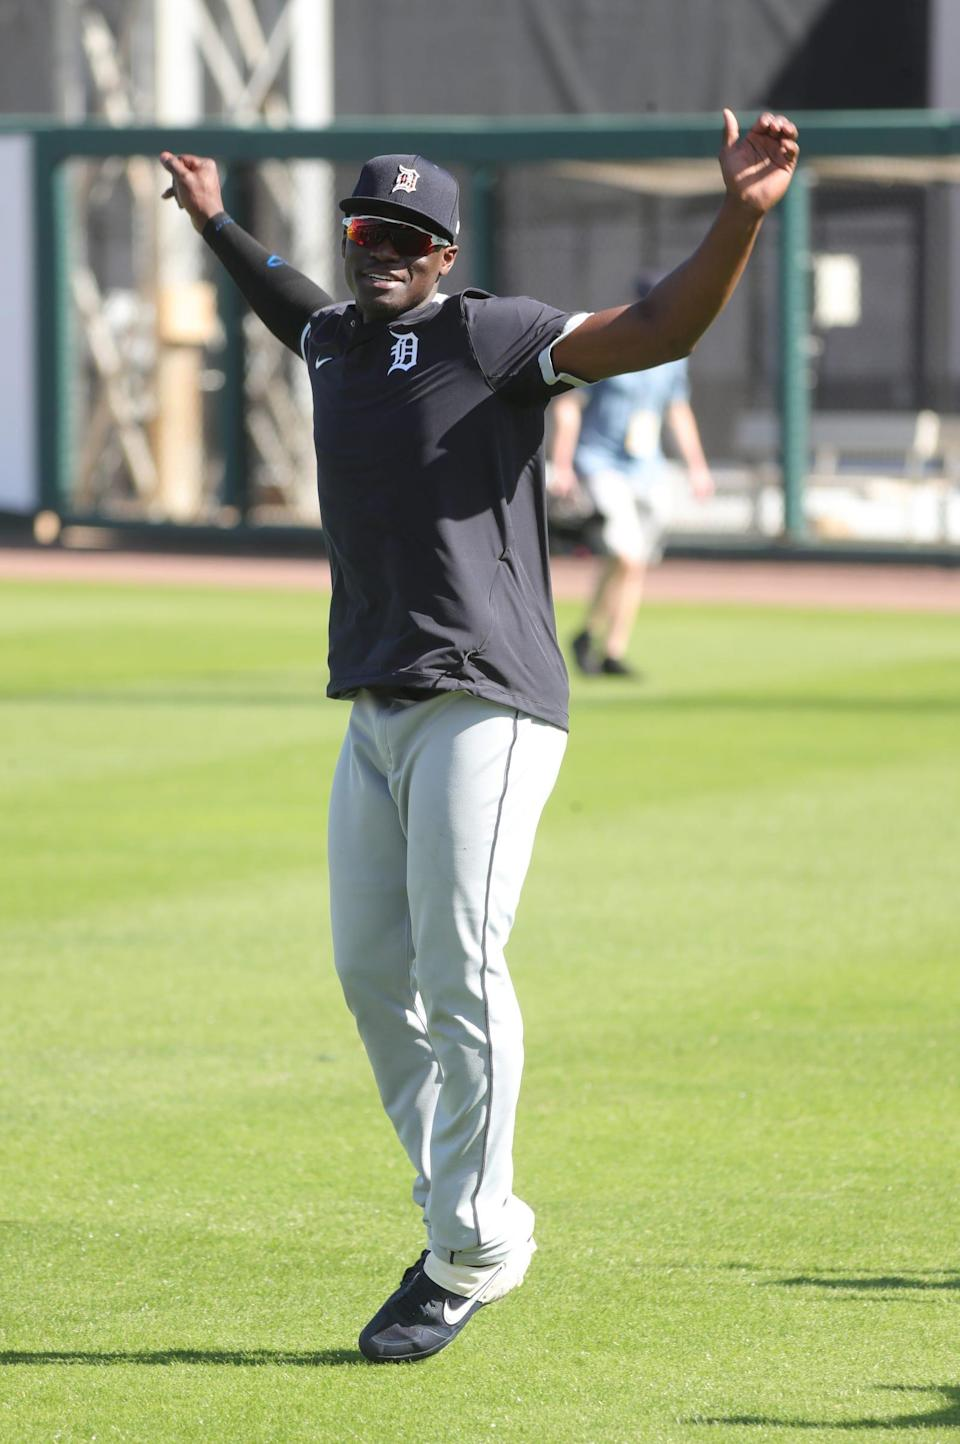 Tigers outfielder Daz Cameron goes through drills during spring training on Saturday, Feb. 27, 2021, at Publix Field at Joker Marchant Stadium in Lakeland, Florida.